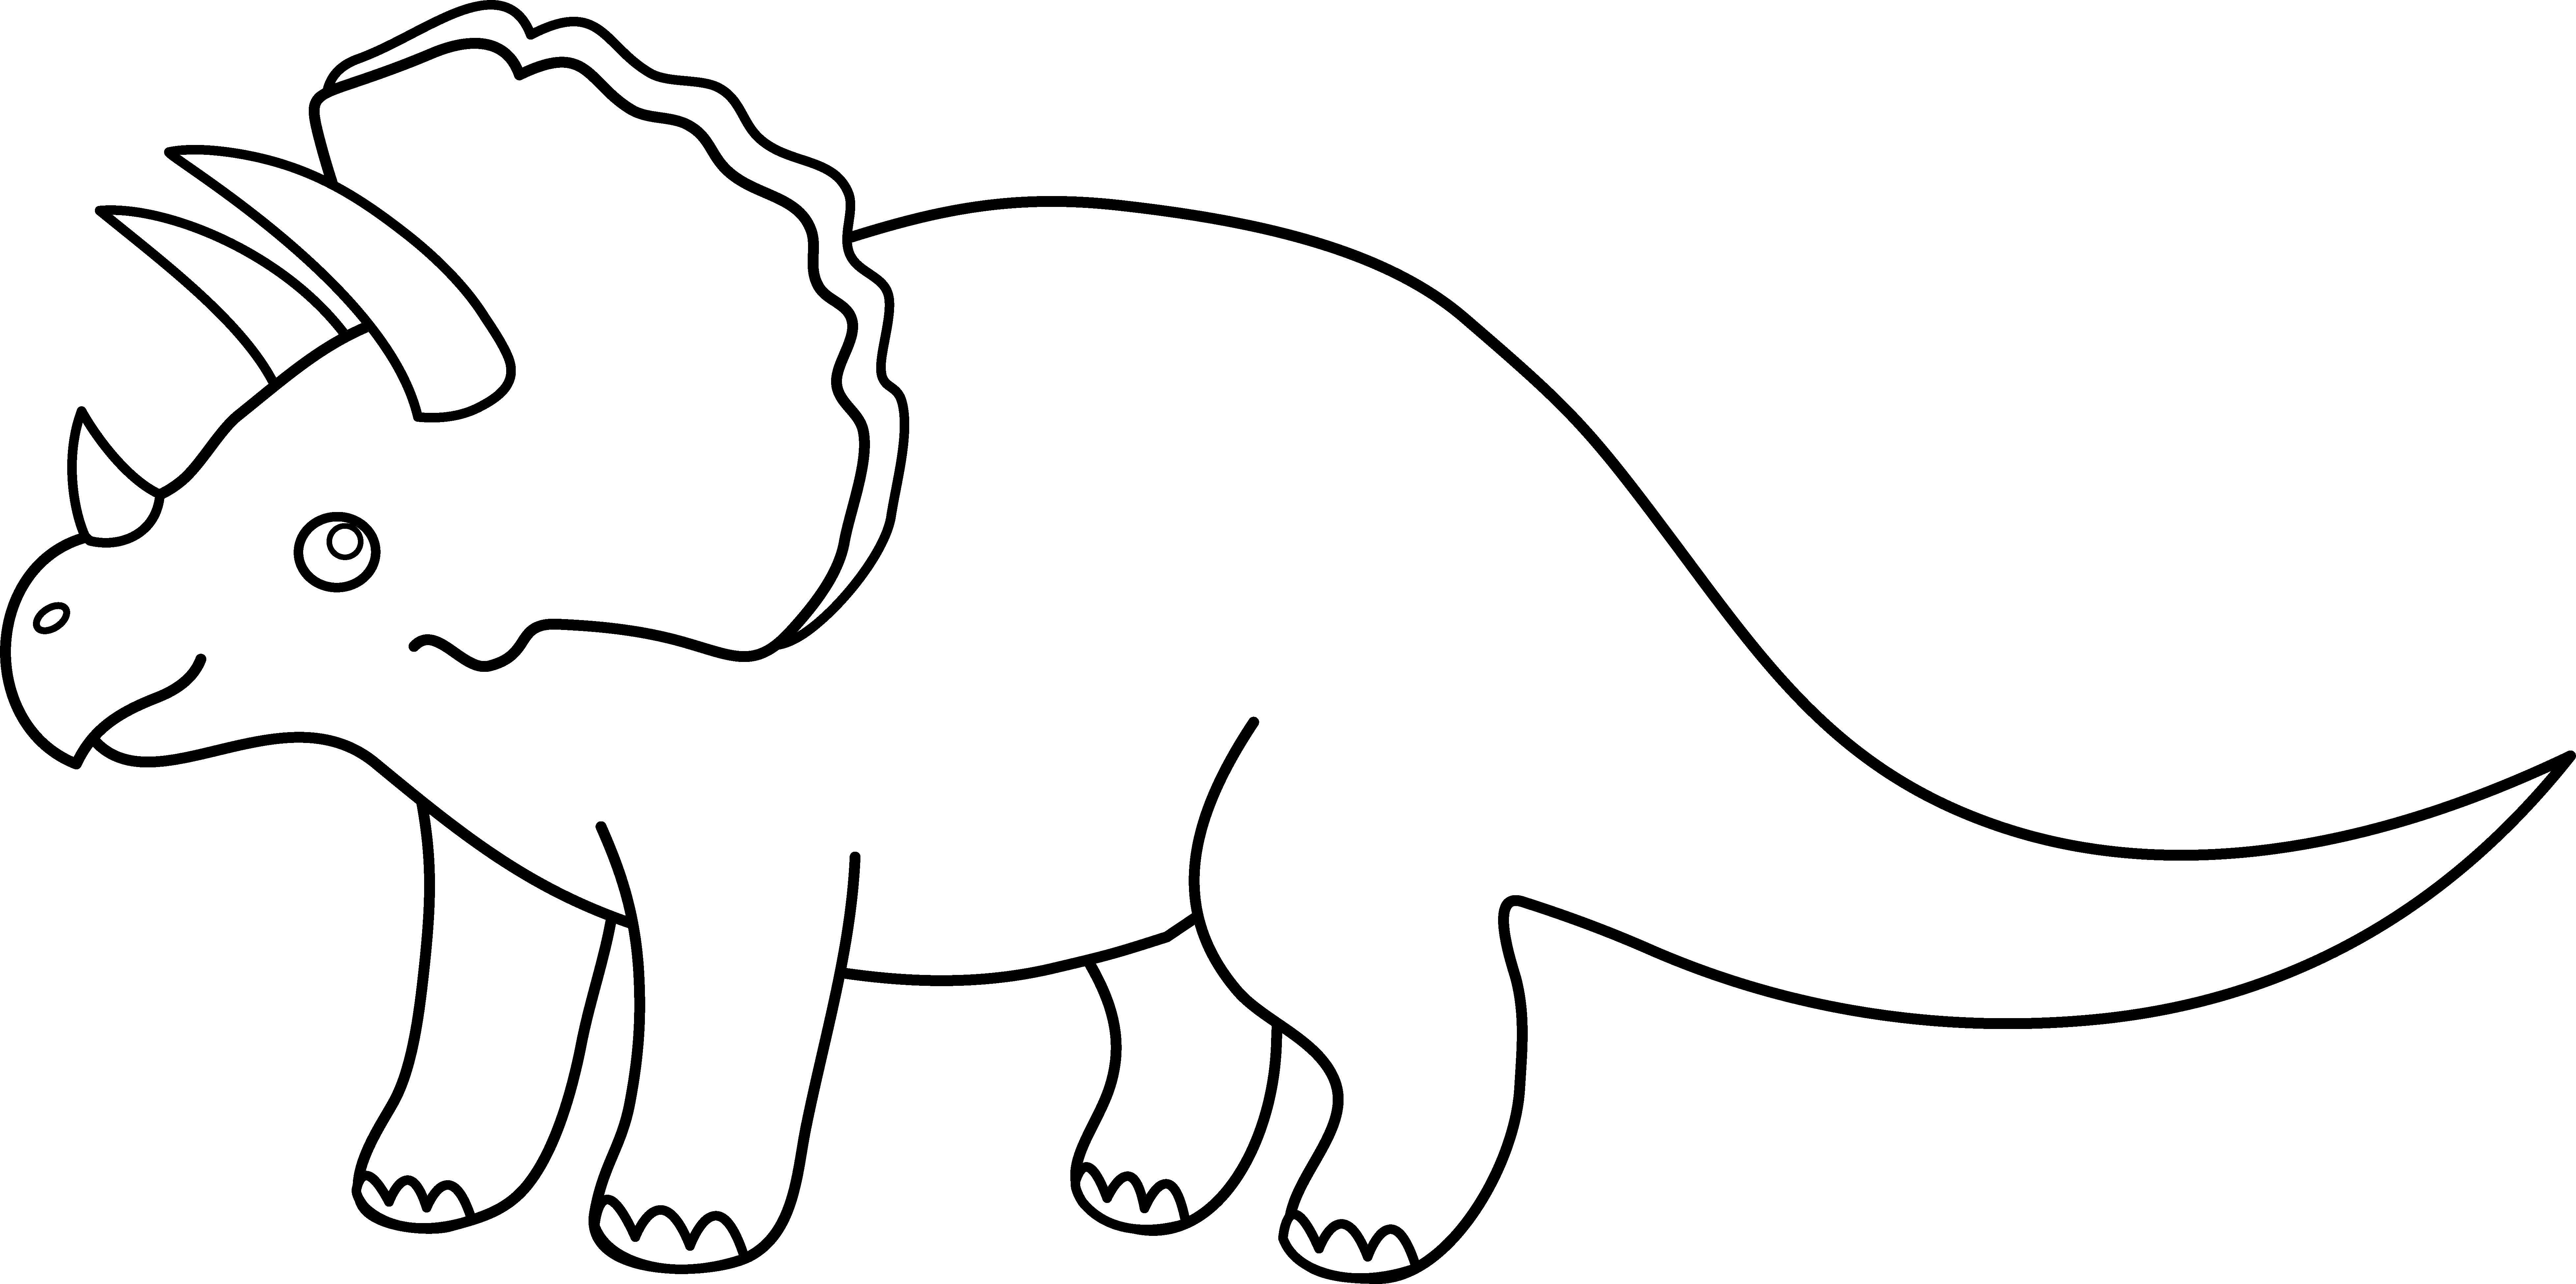 image royalty free stock Dinosaur Clipart Black And White For Modern Concept Cute Dinosaur